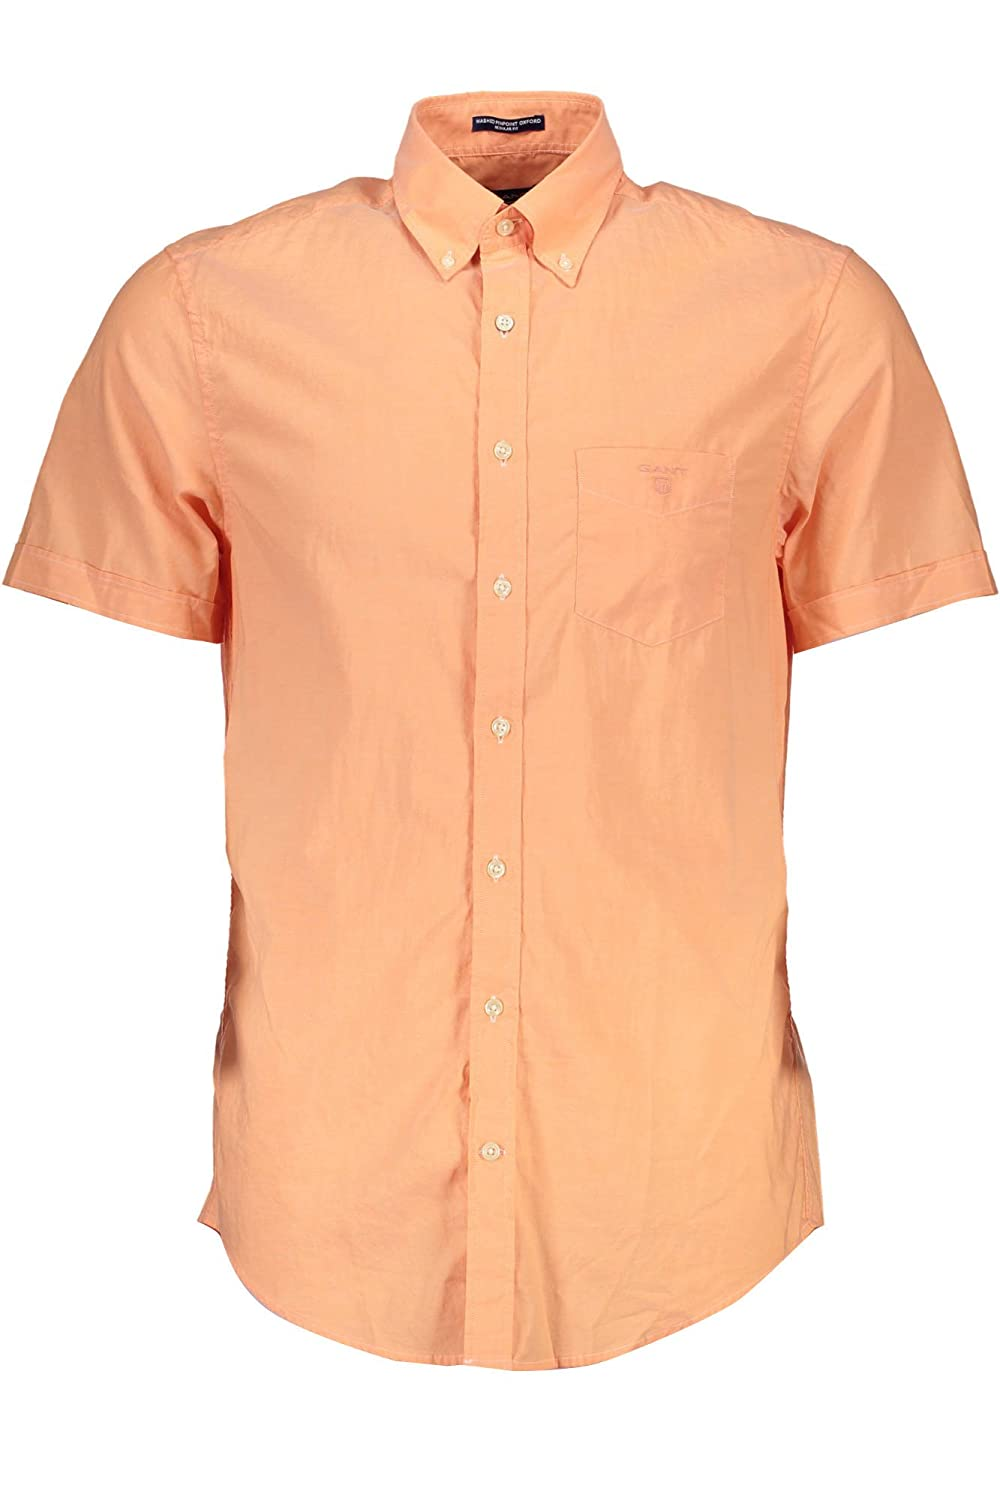 Gant The Washed Pinpoint Oxford SS BD, Camicia Uomo 347301